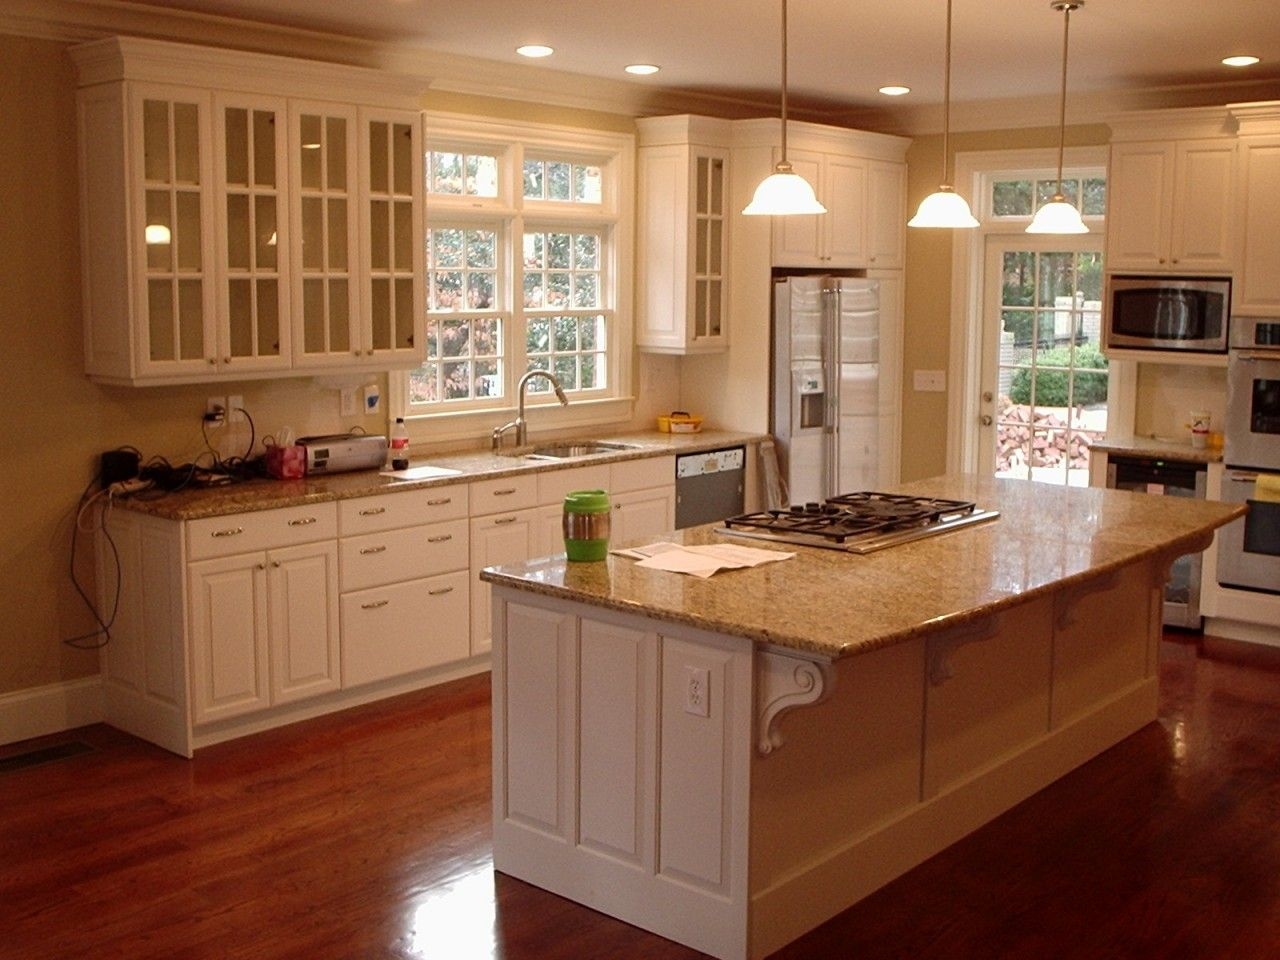 bathroom, white kitchen cabinet designs in cool kitchen with wood